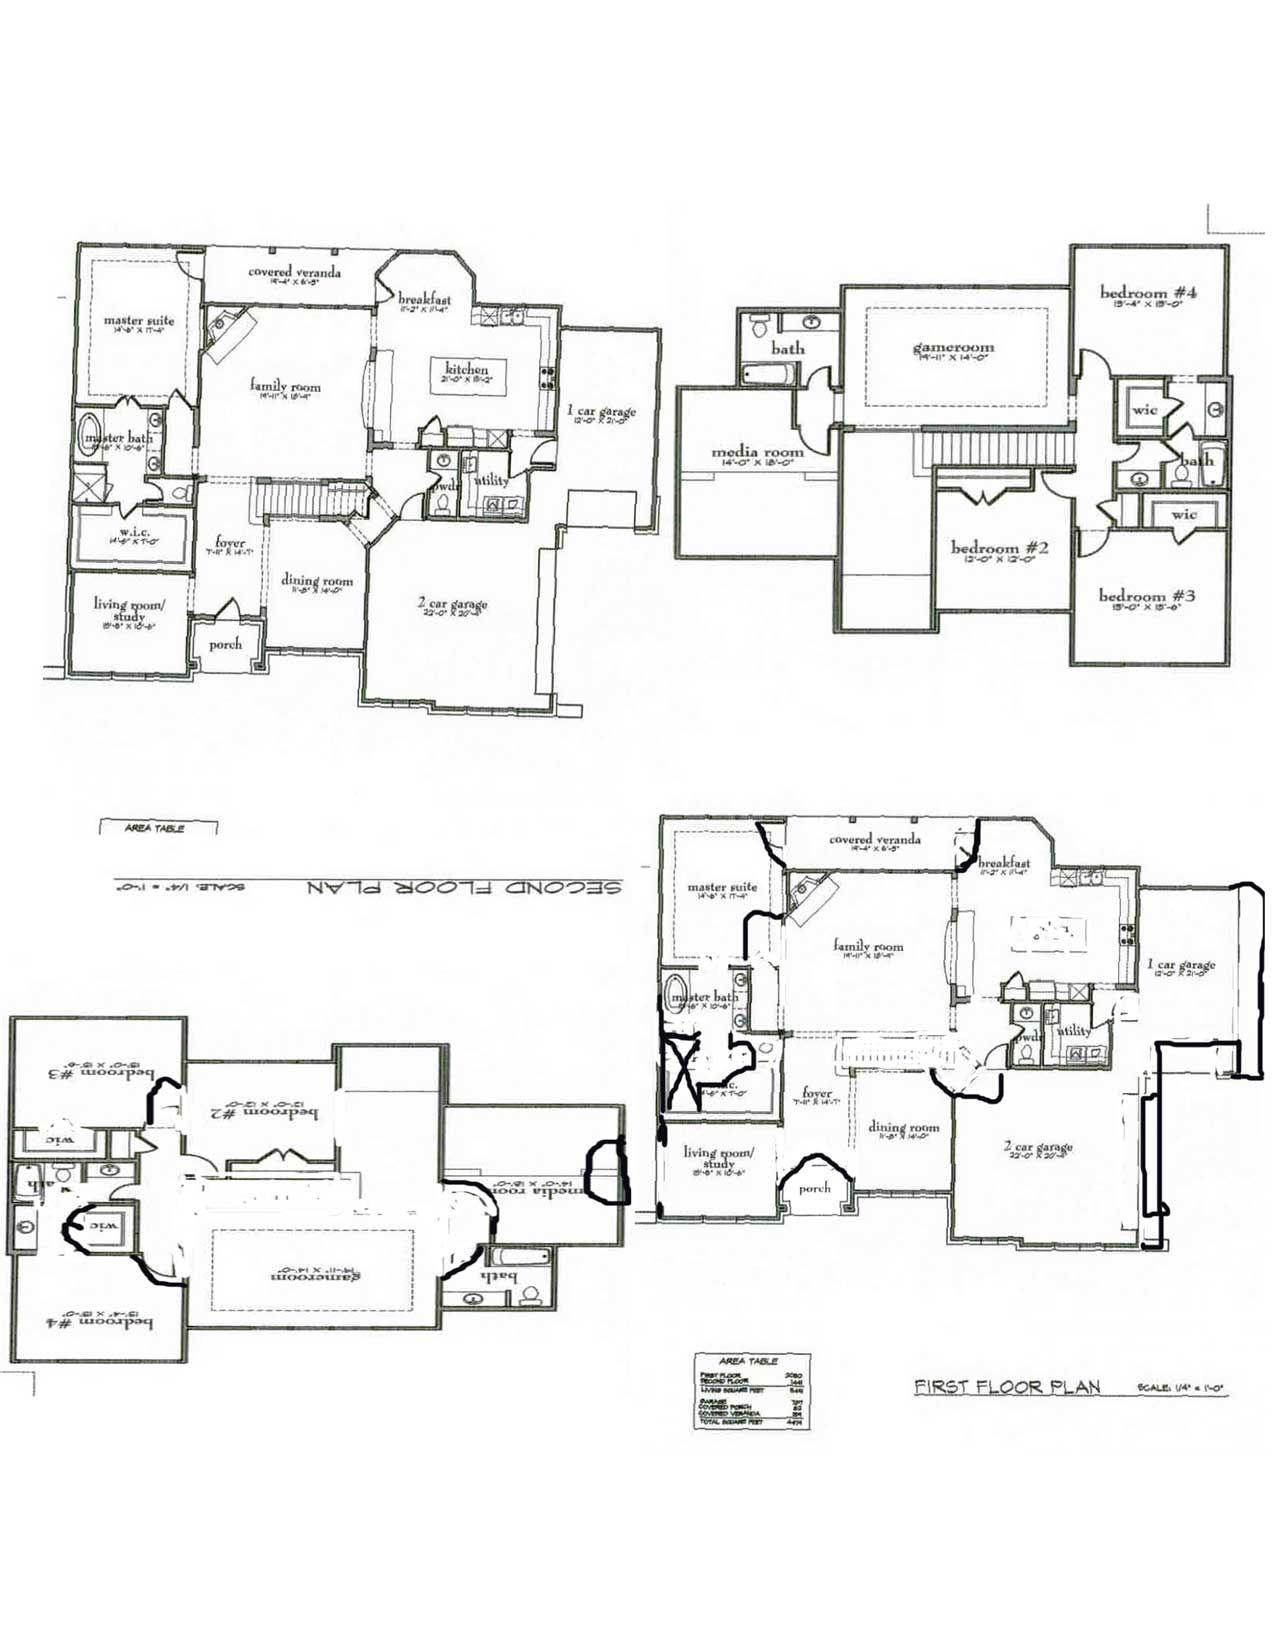 Fs4233 Design For Special Needs I Redesigned A House Floor Plan To Accommodate A Wheelcha Accessible House Plans Dream Home Design Mother In Law Apartment